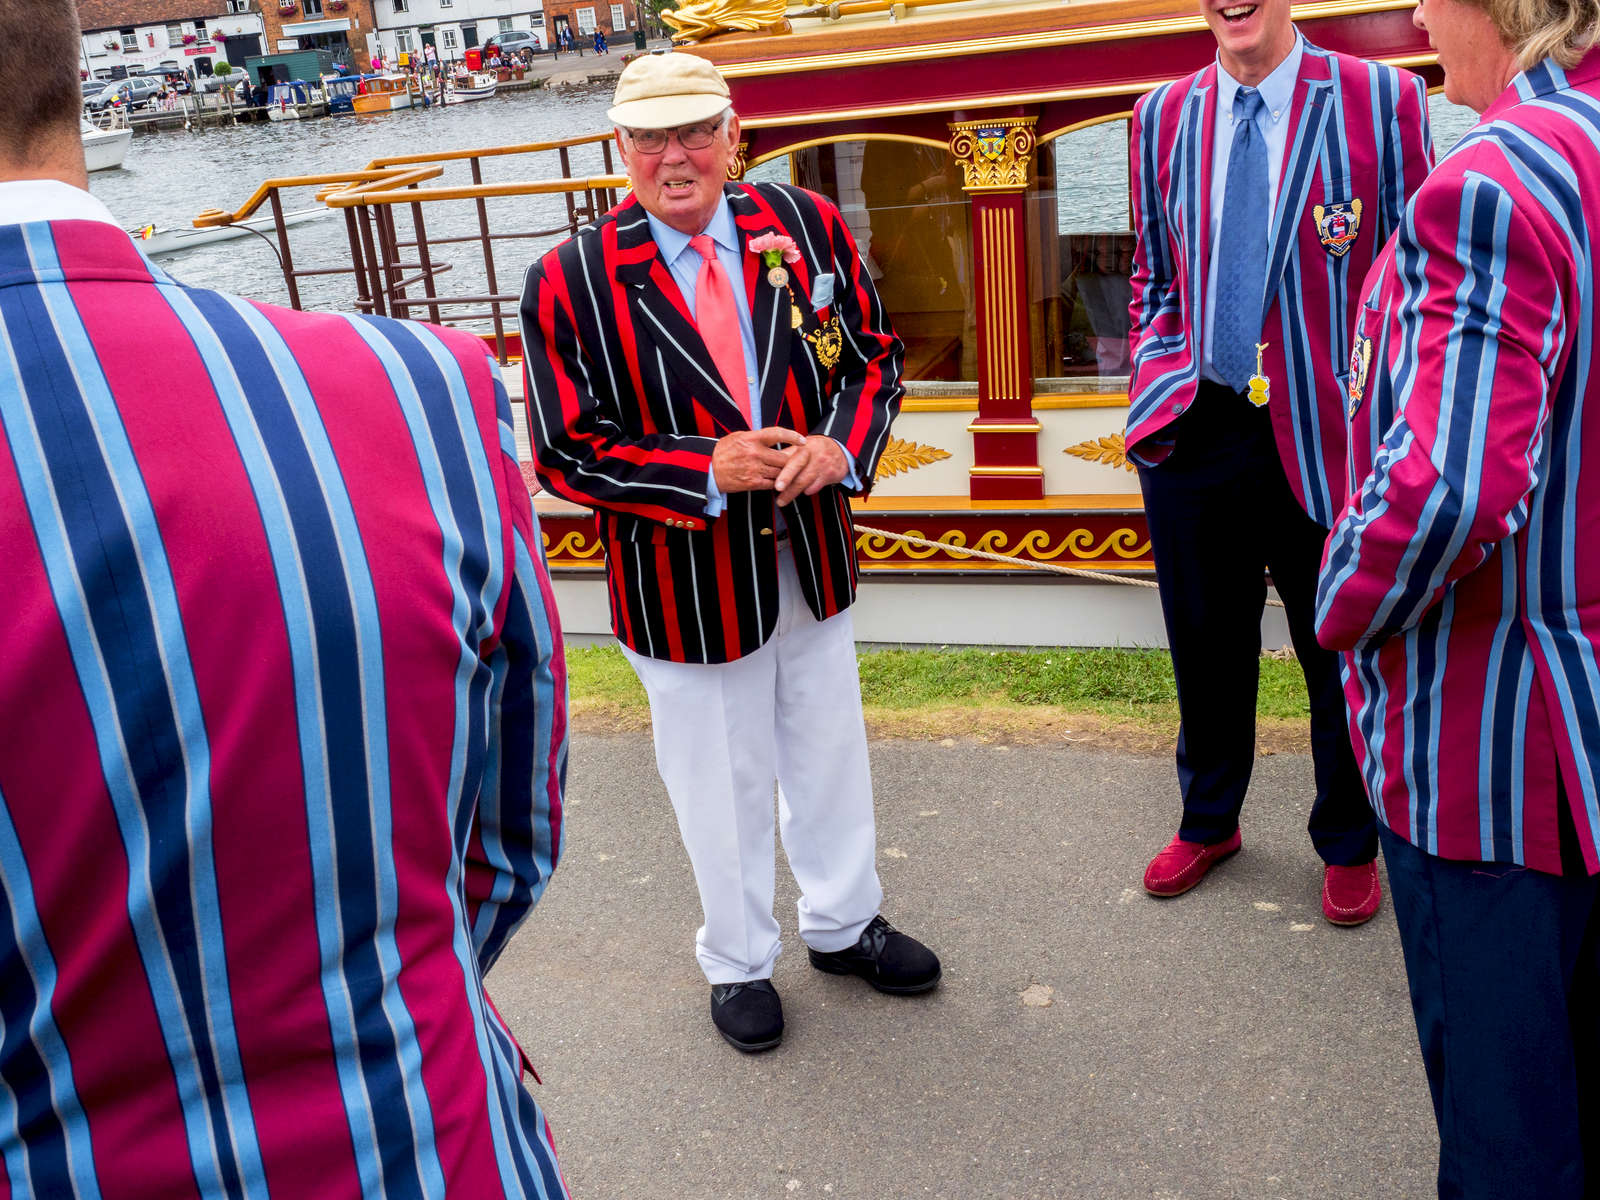 Rowing club colours worn by spectators at Henley.Henley Royal Regatta is a rowing event held annually on the River Thames by the town of Henley-on-Thames, England. It was established on 26 March 1839.